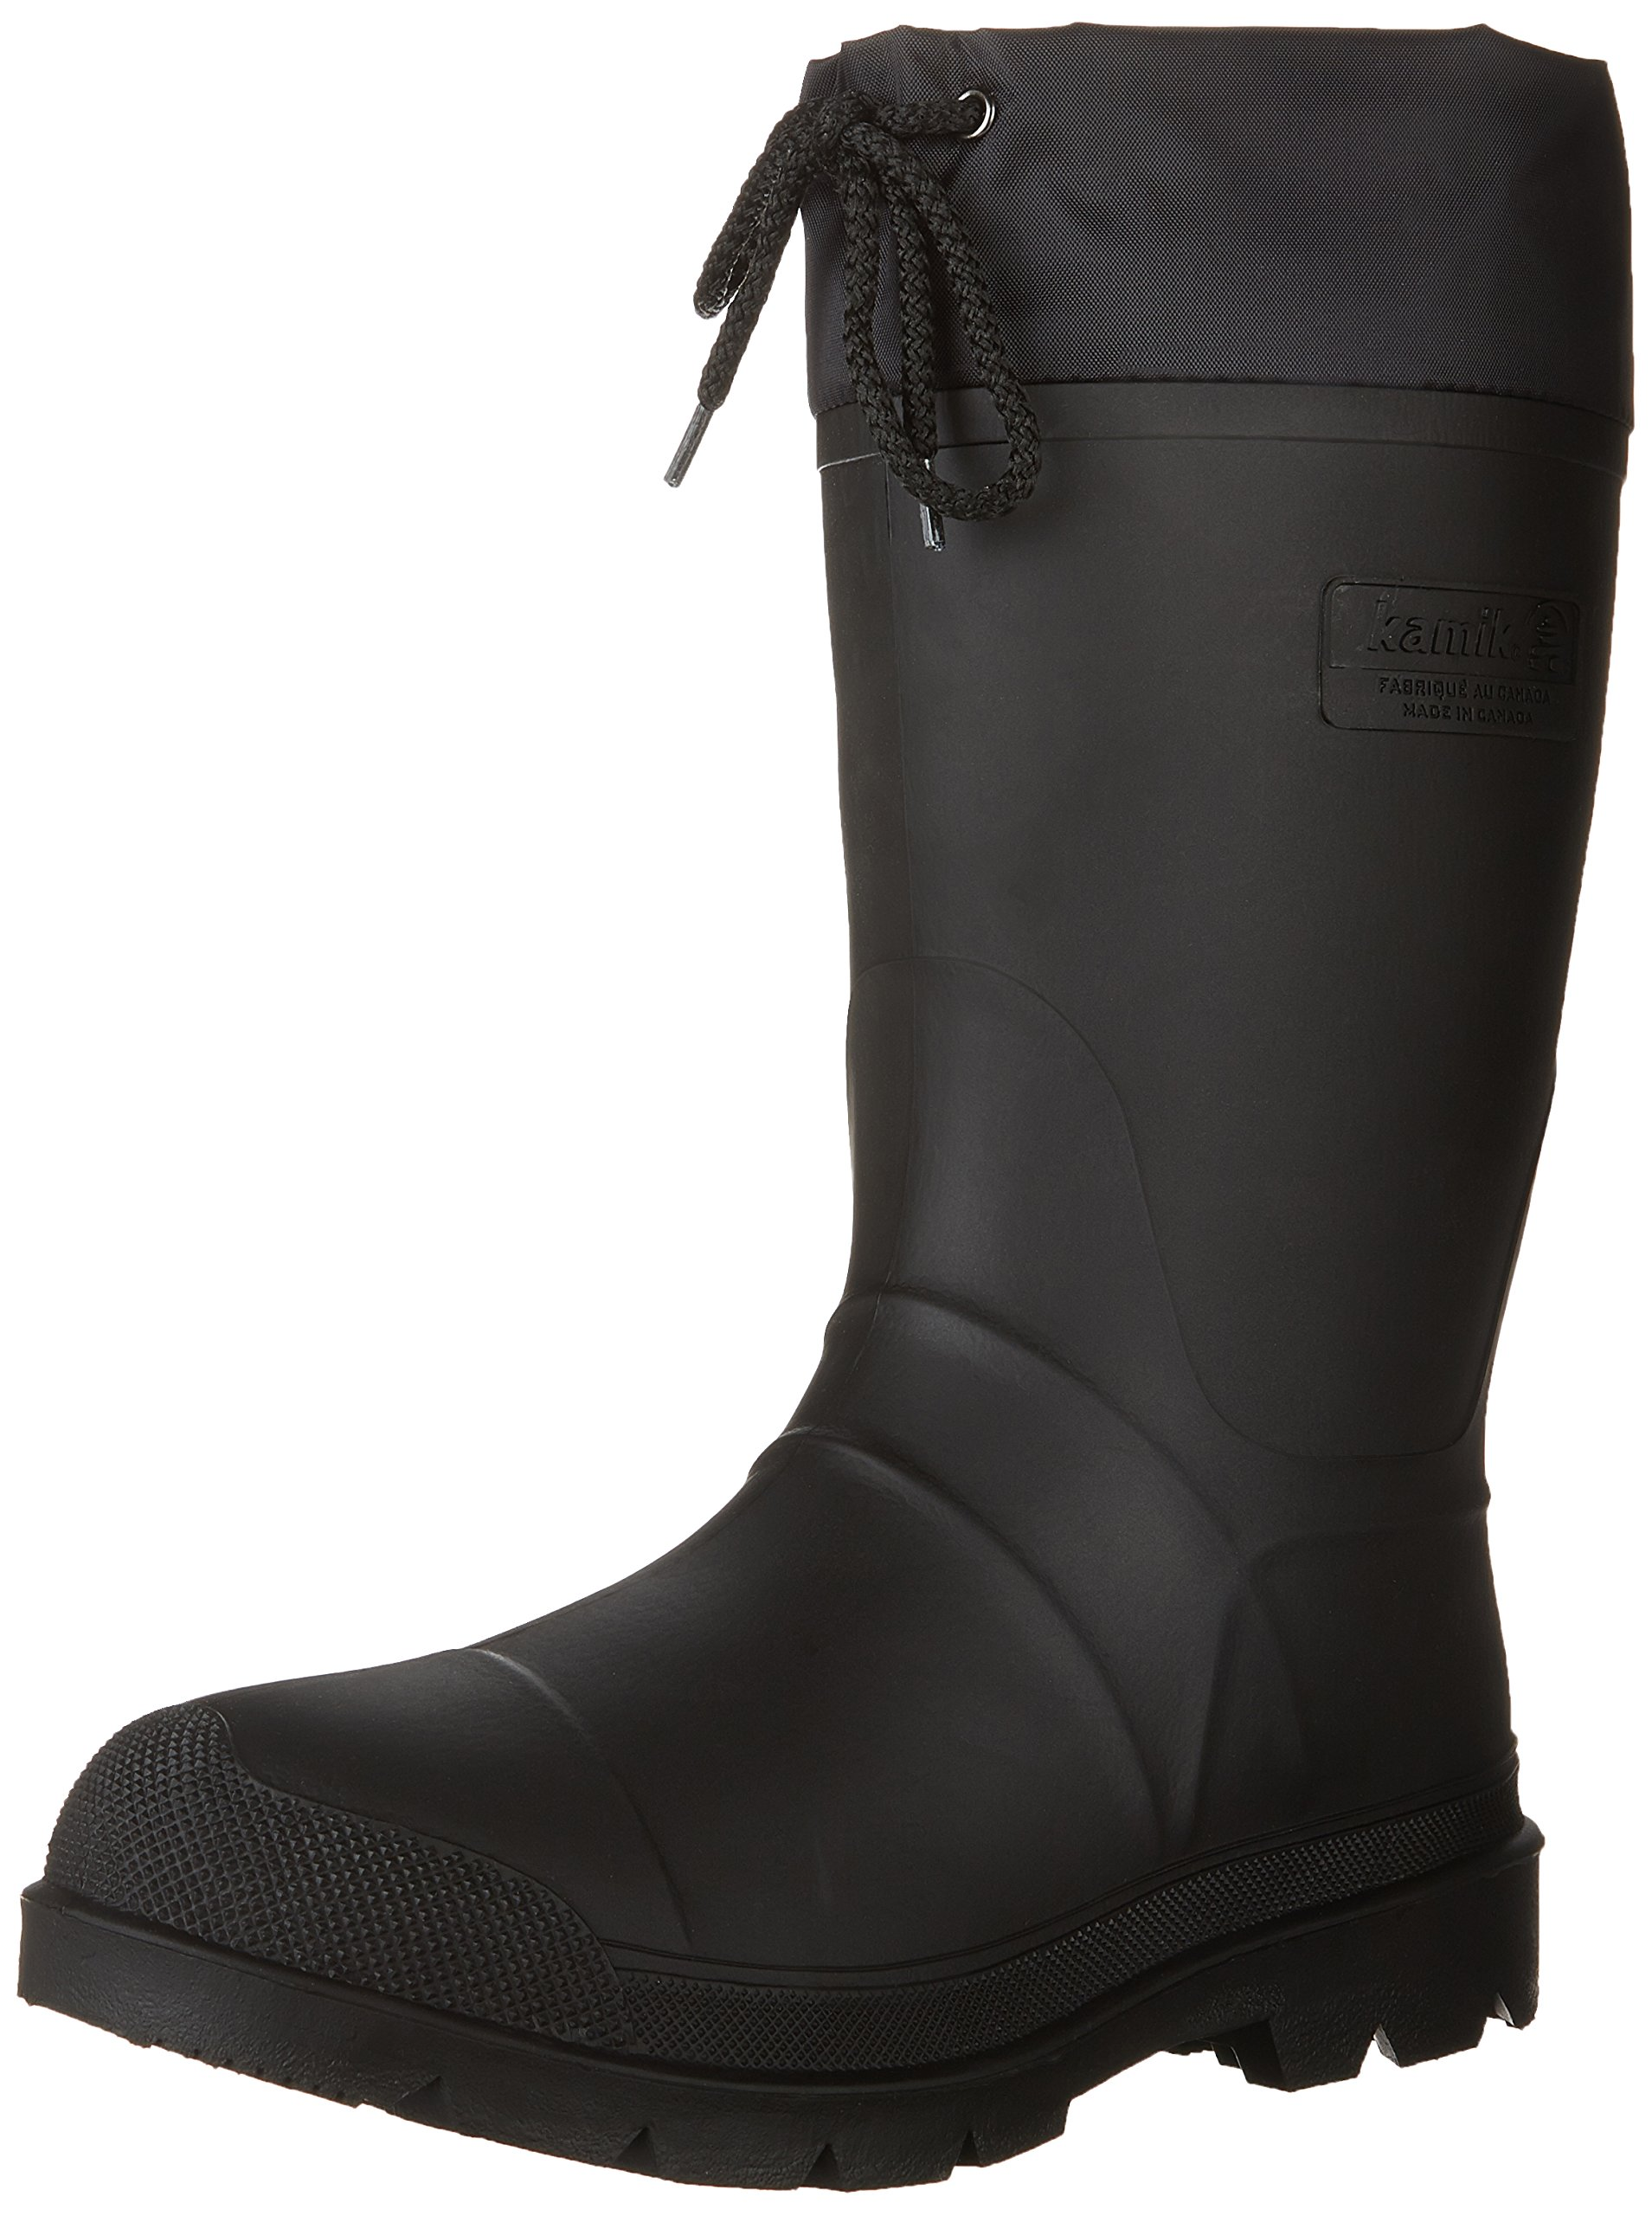 Kamik Men's Hunter Insulated Winter Boot, Black, 9 M US by Kamik